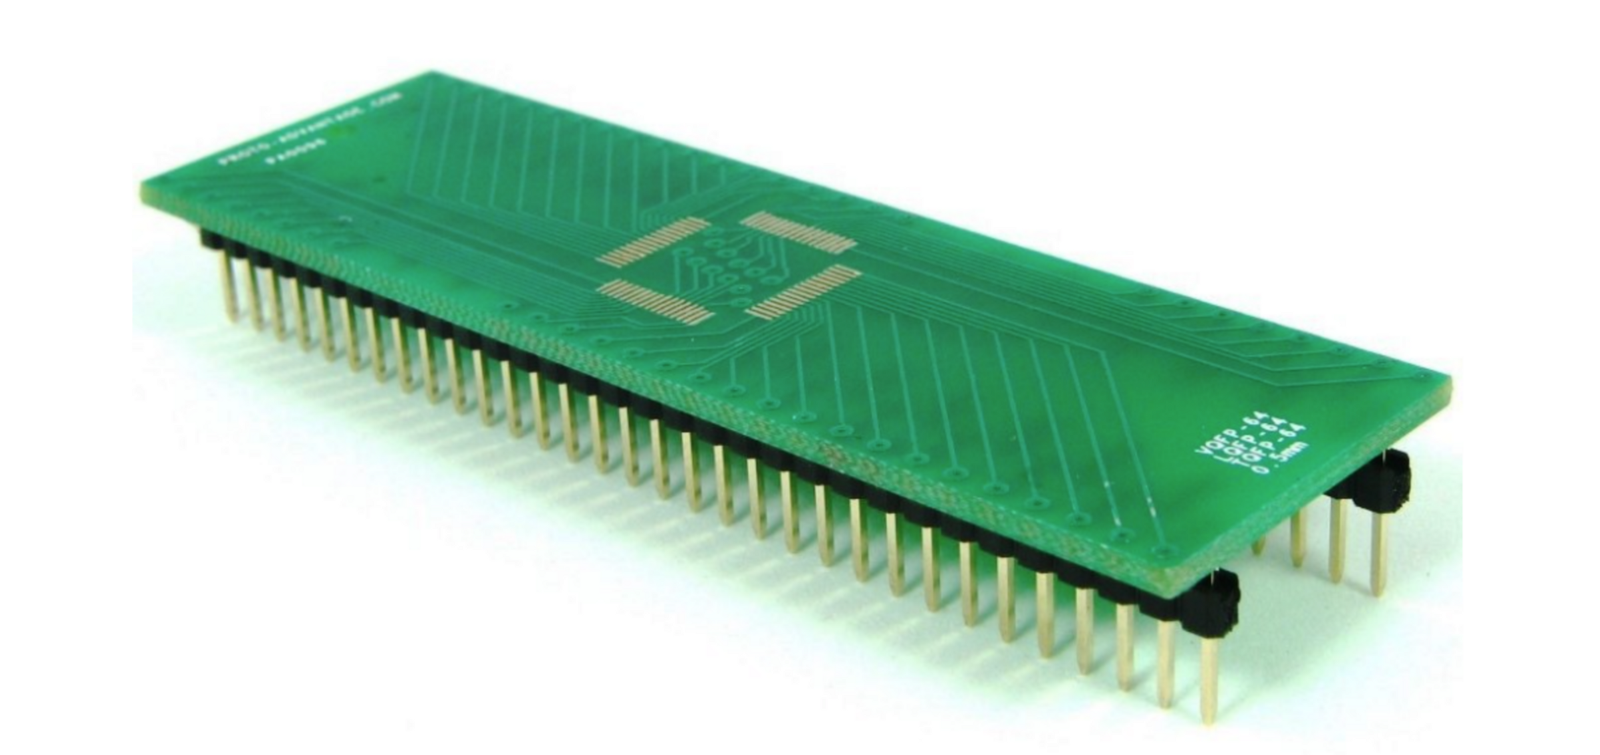 Connection Headers On Mini Circuit Board Surface Mount Electronics For Hobbyists Easier Than You Think The Reverse Side Of Kicad Proto Pcb Includes Footprints Larger Chips Including Tqfp 64 There Are Also Standalone Boards